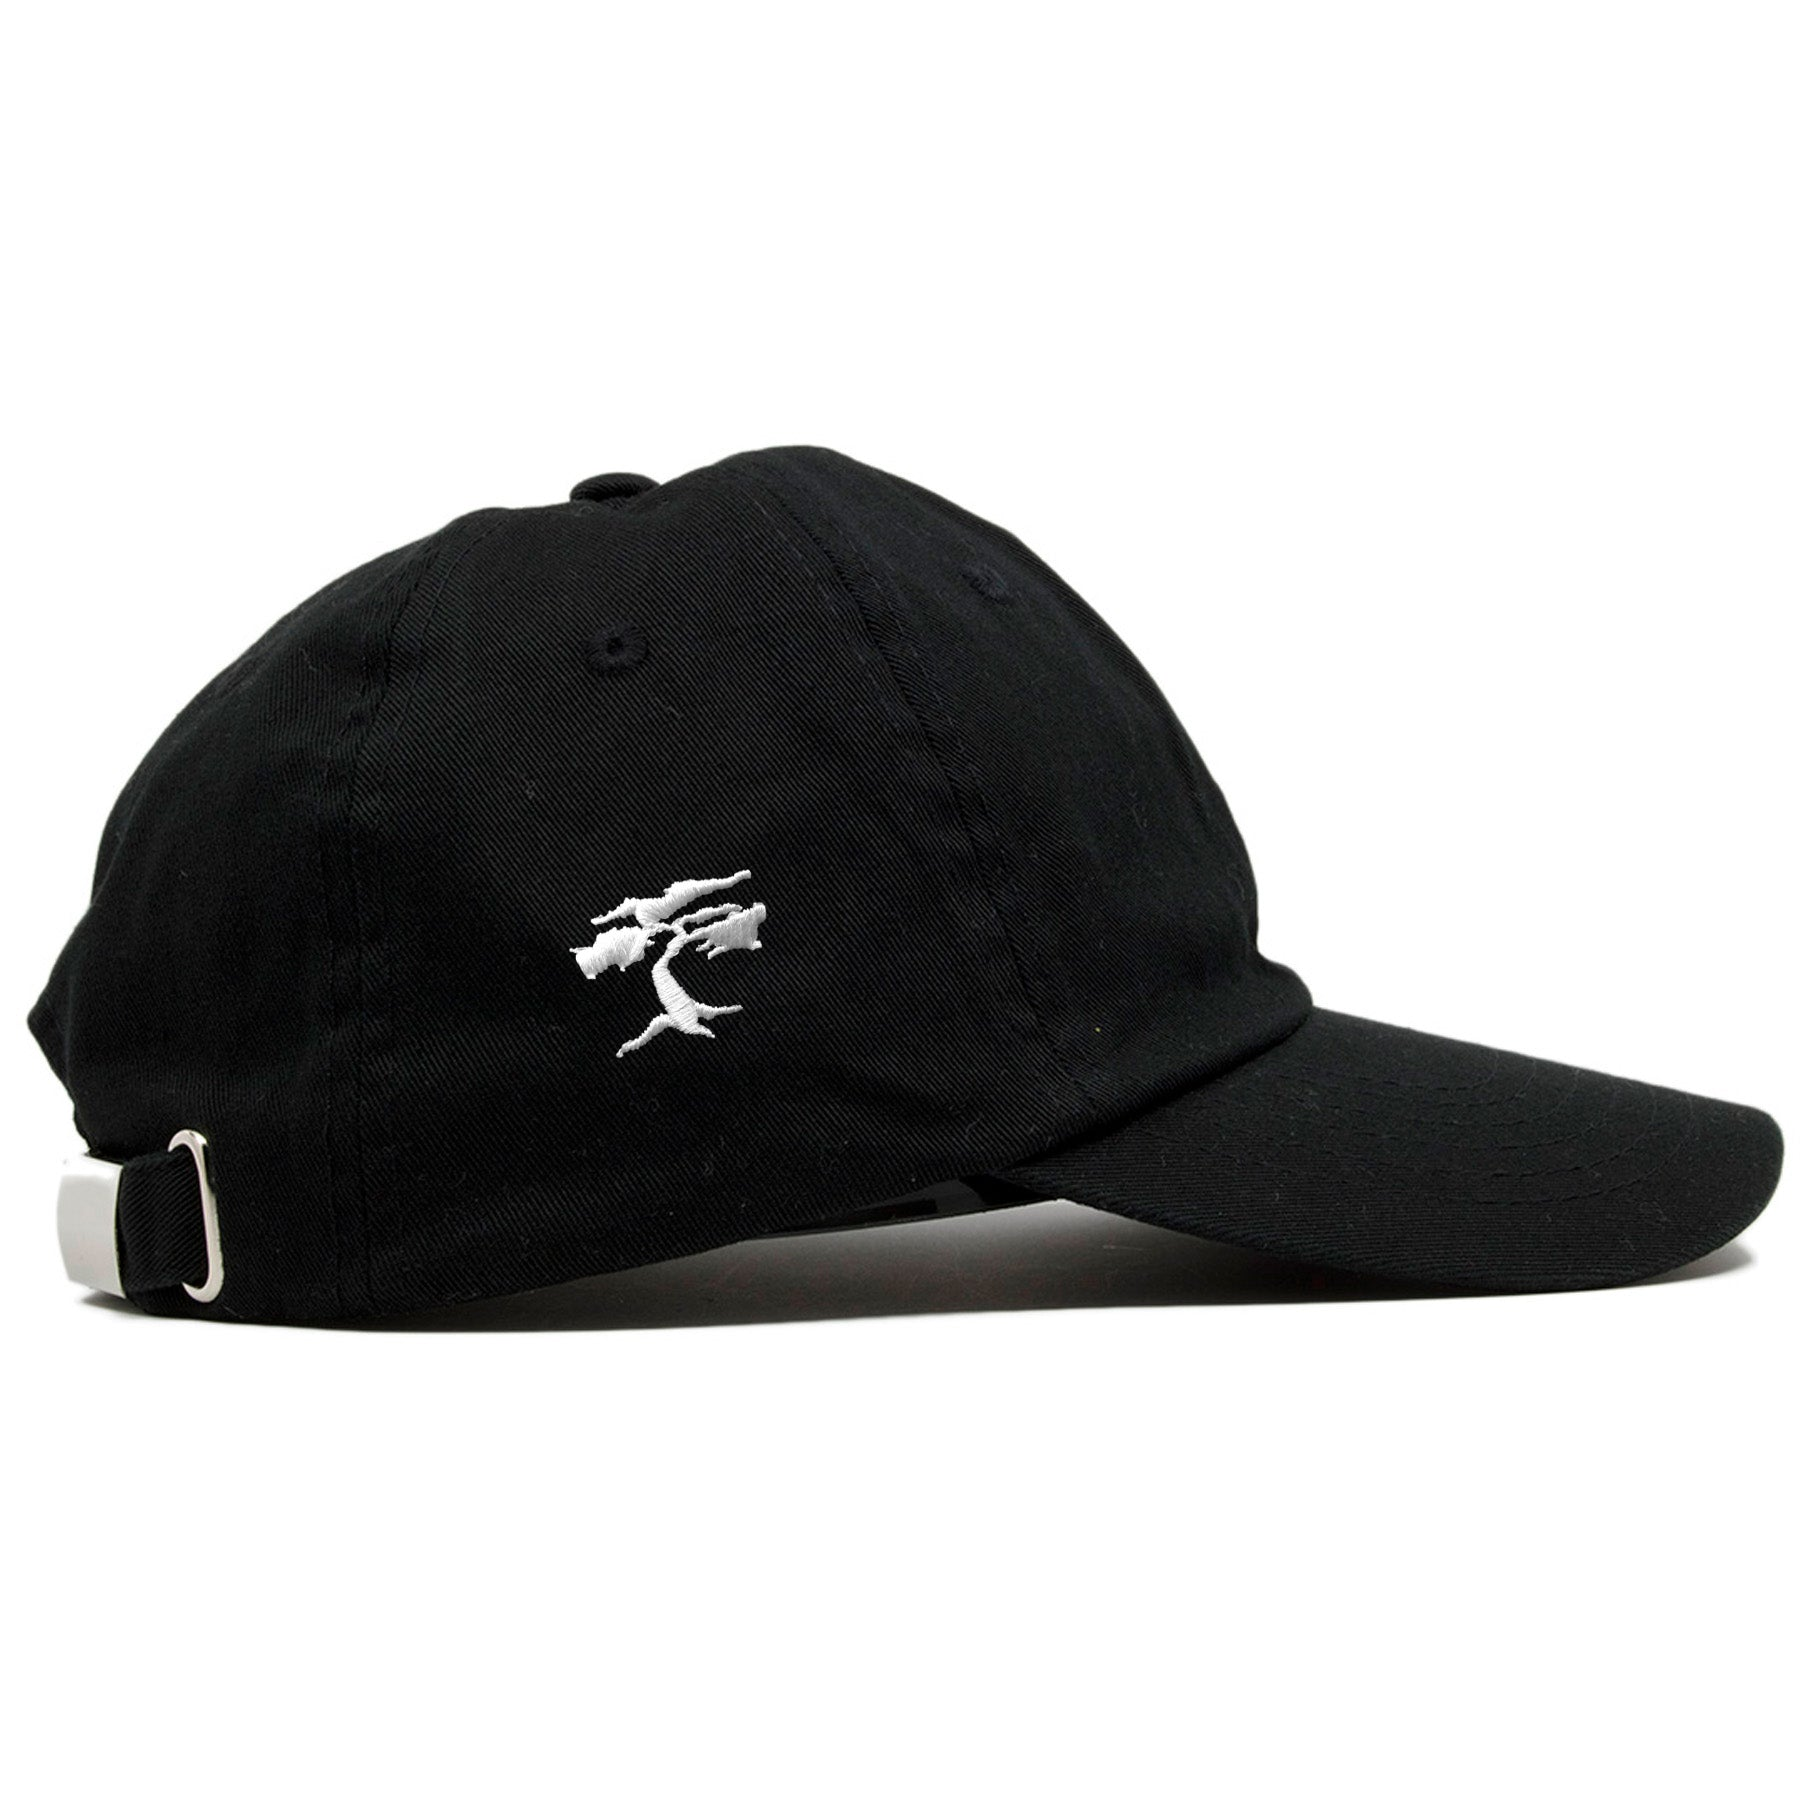 ... on the right side of the hello my name is kids sized papi black dad hat a085832cddf7